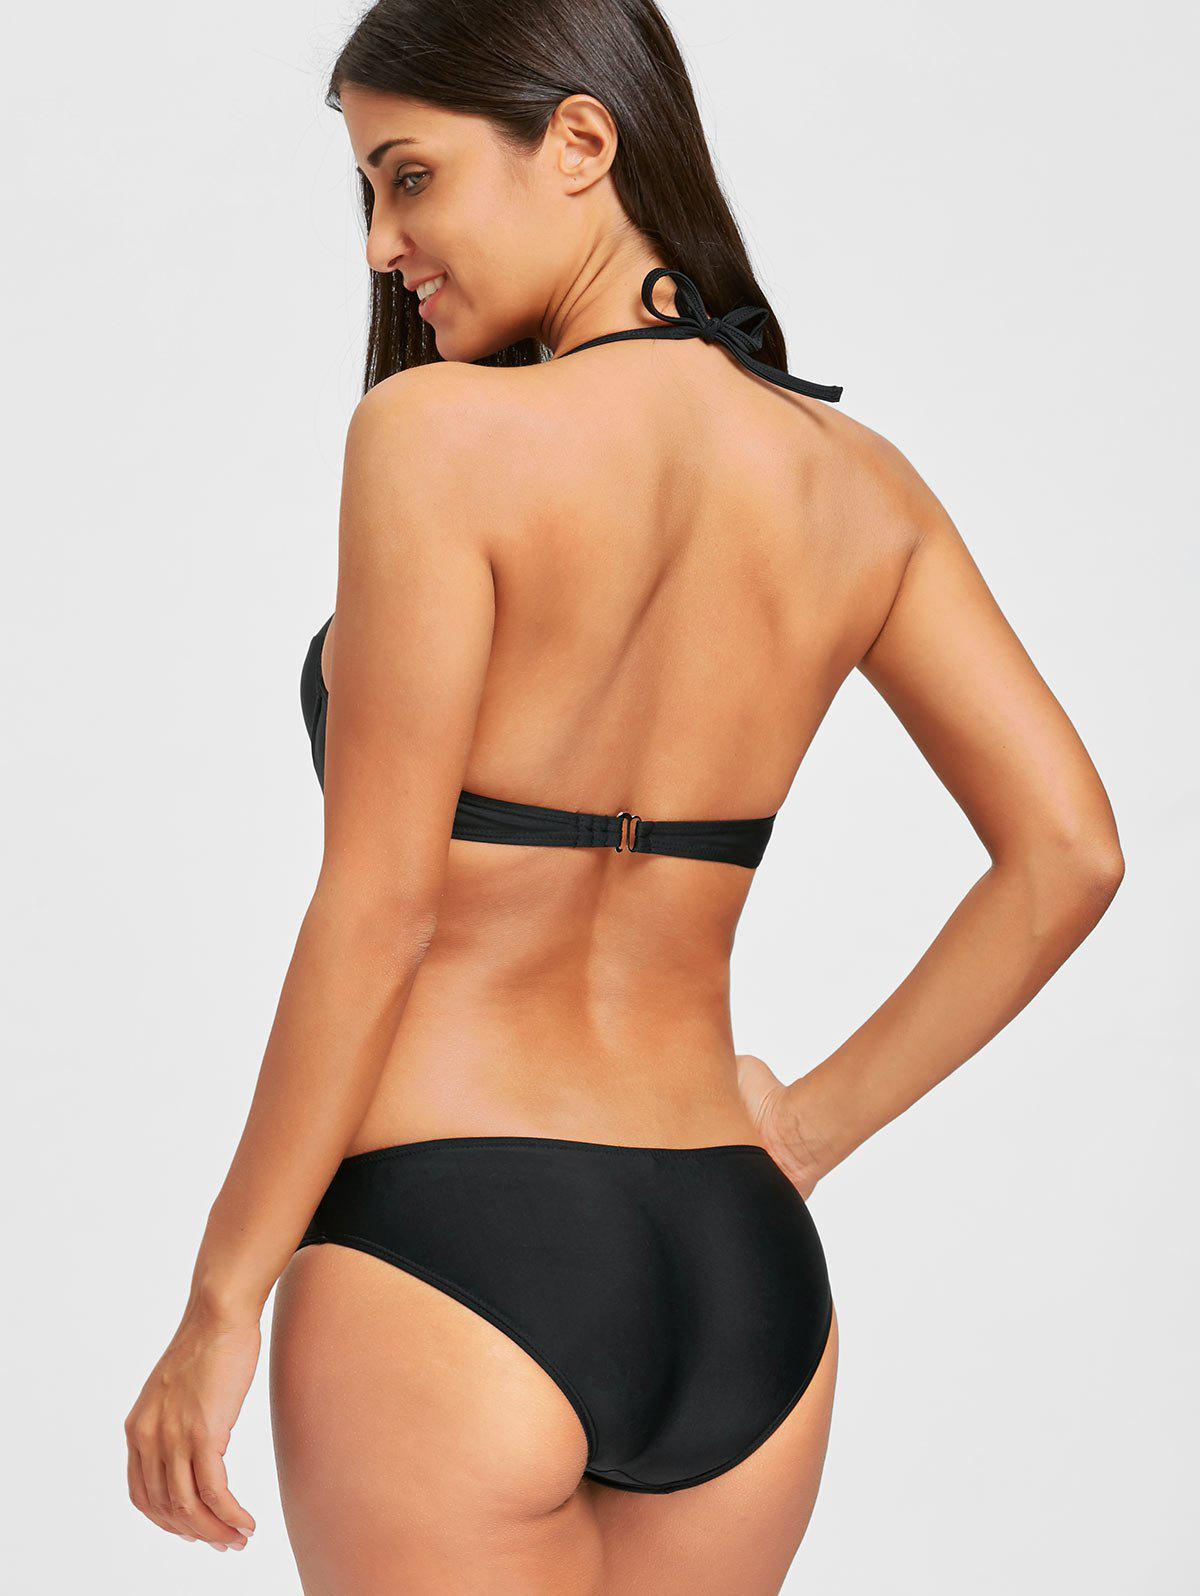 One Piece Backless Push Up Swimsuit - BLACK XL